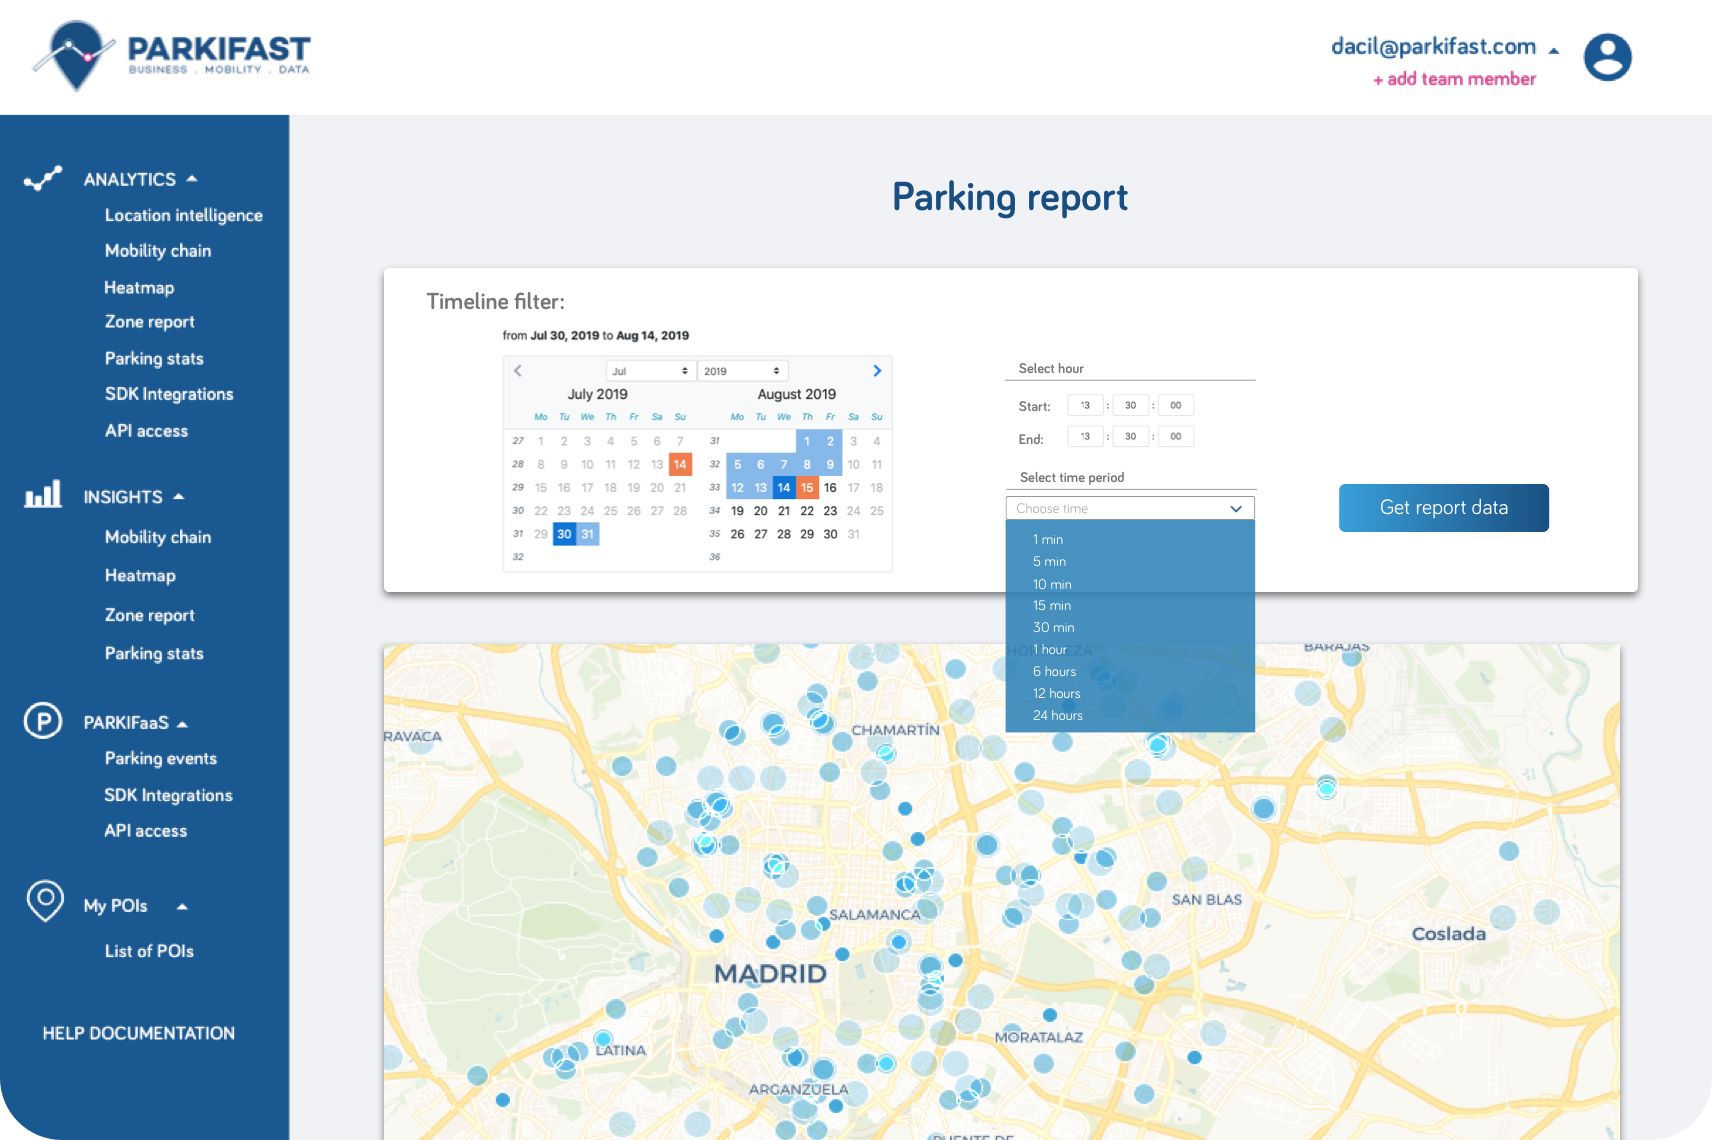 WEB-SCREENSHOT-Parking report